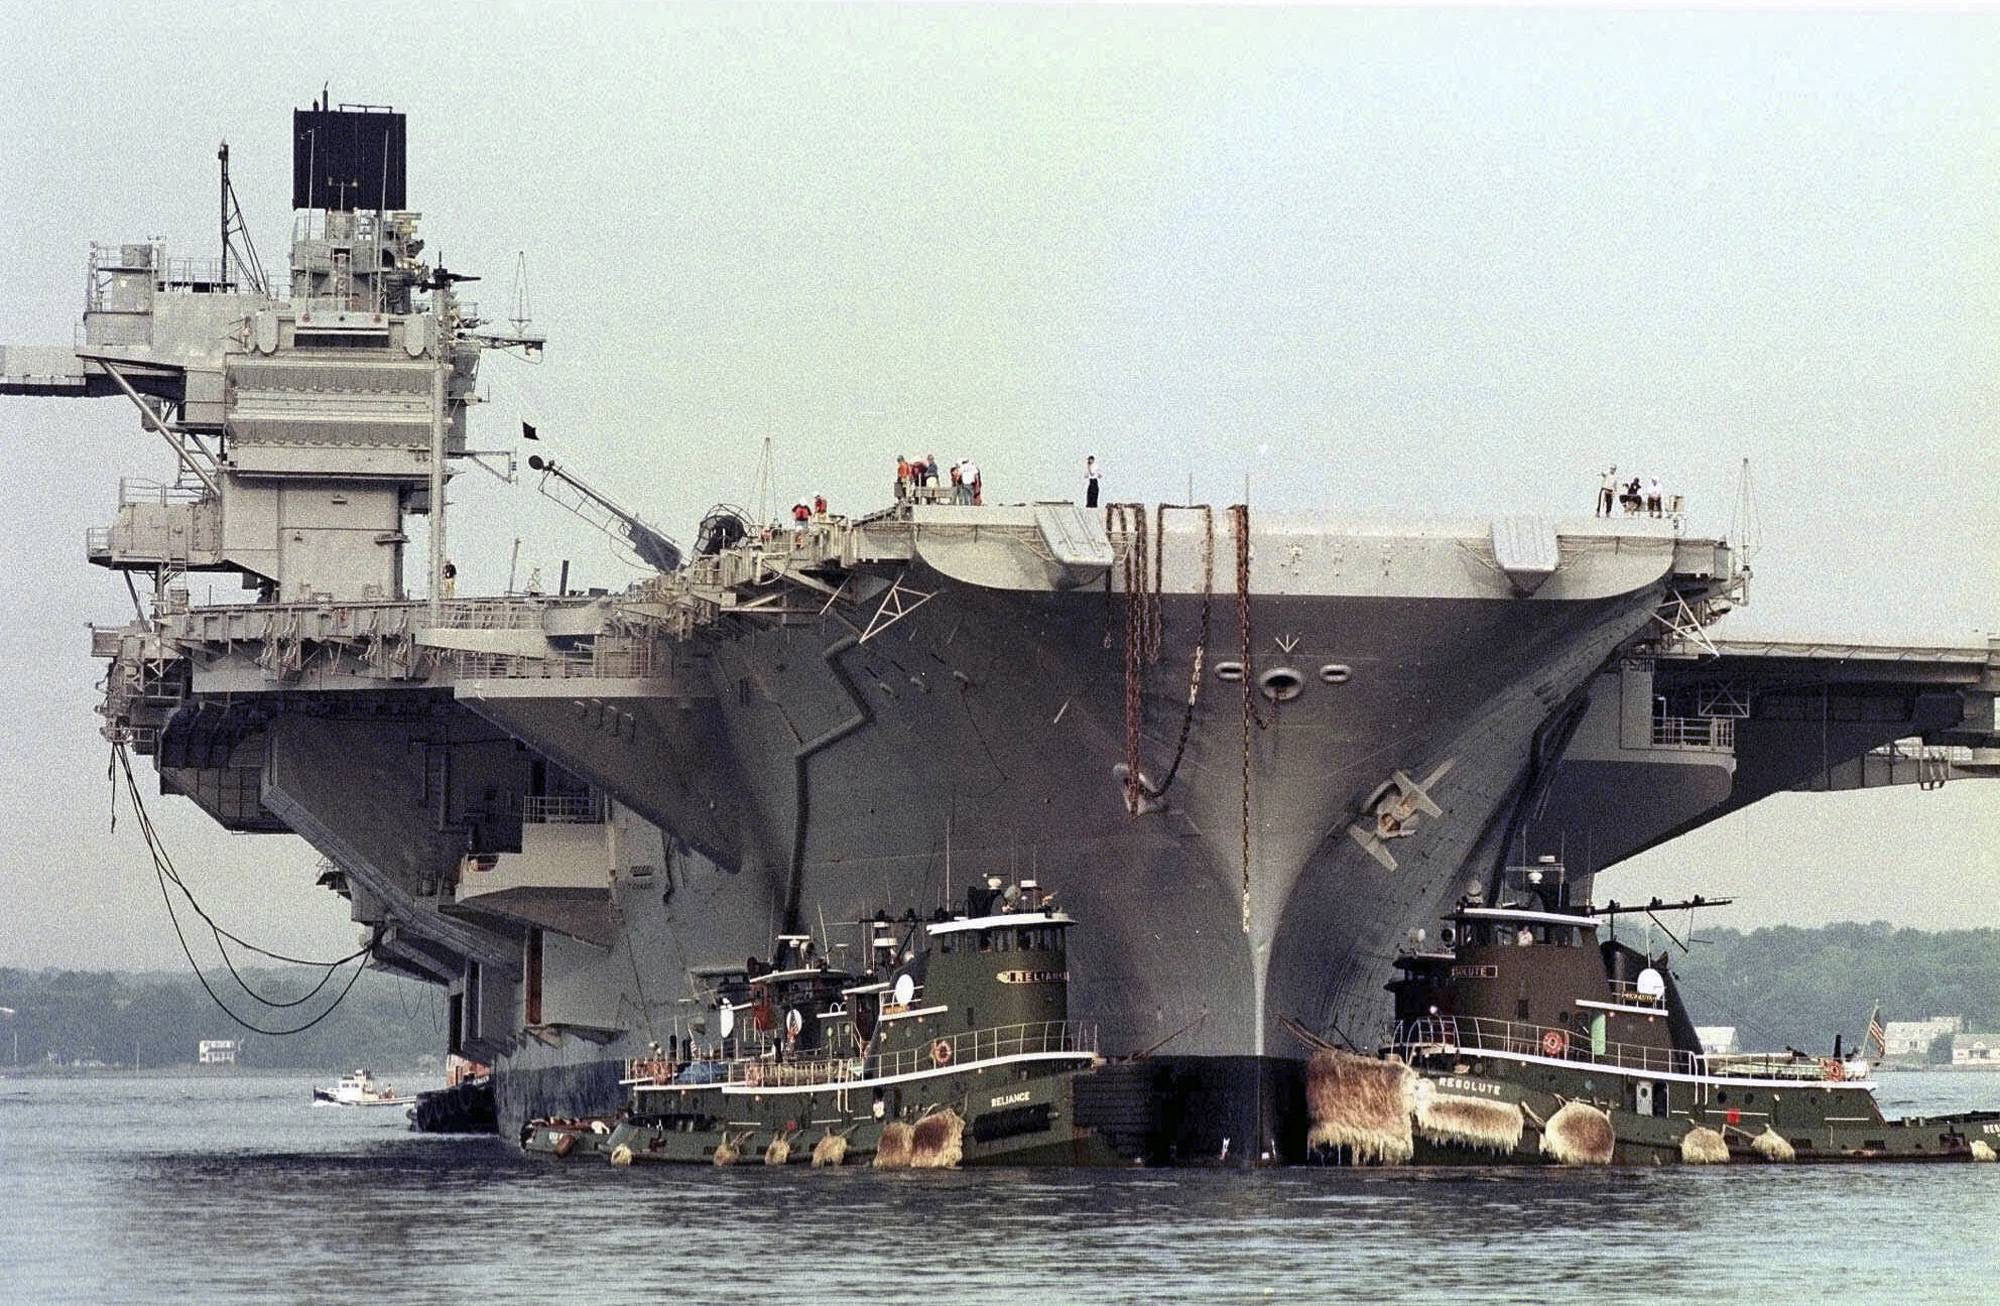 The U.S.S. Saratoga aircraft carrier is guided into Pier One of Coddington Cove in Middletown, R.I., by tugs after a five-day journey from the Philadelphia Naval Yard.